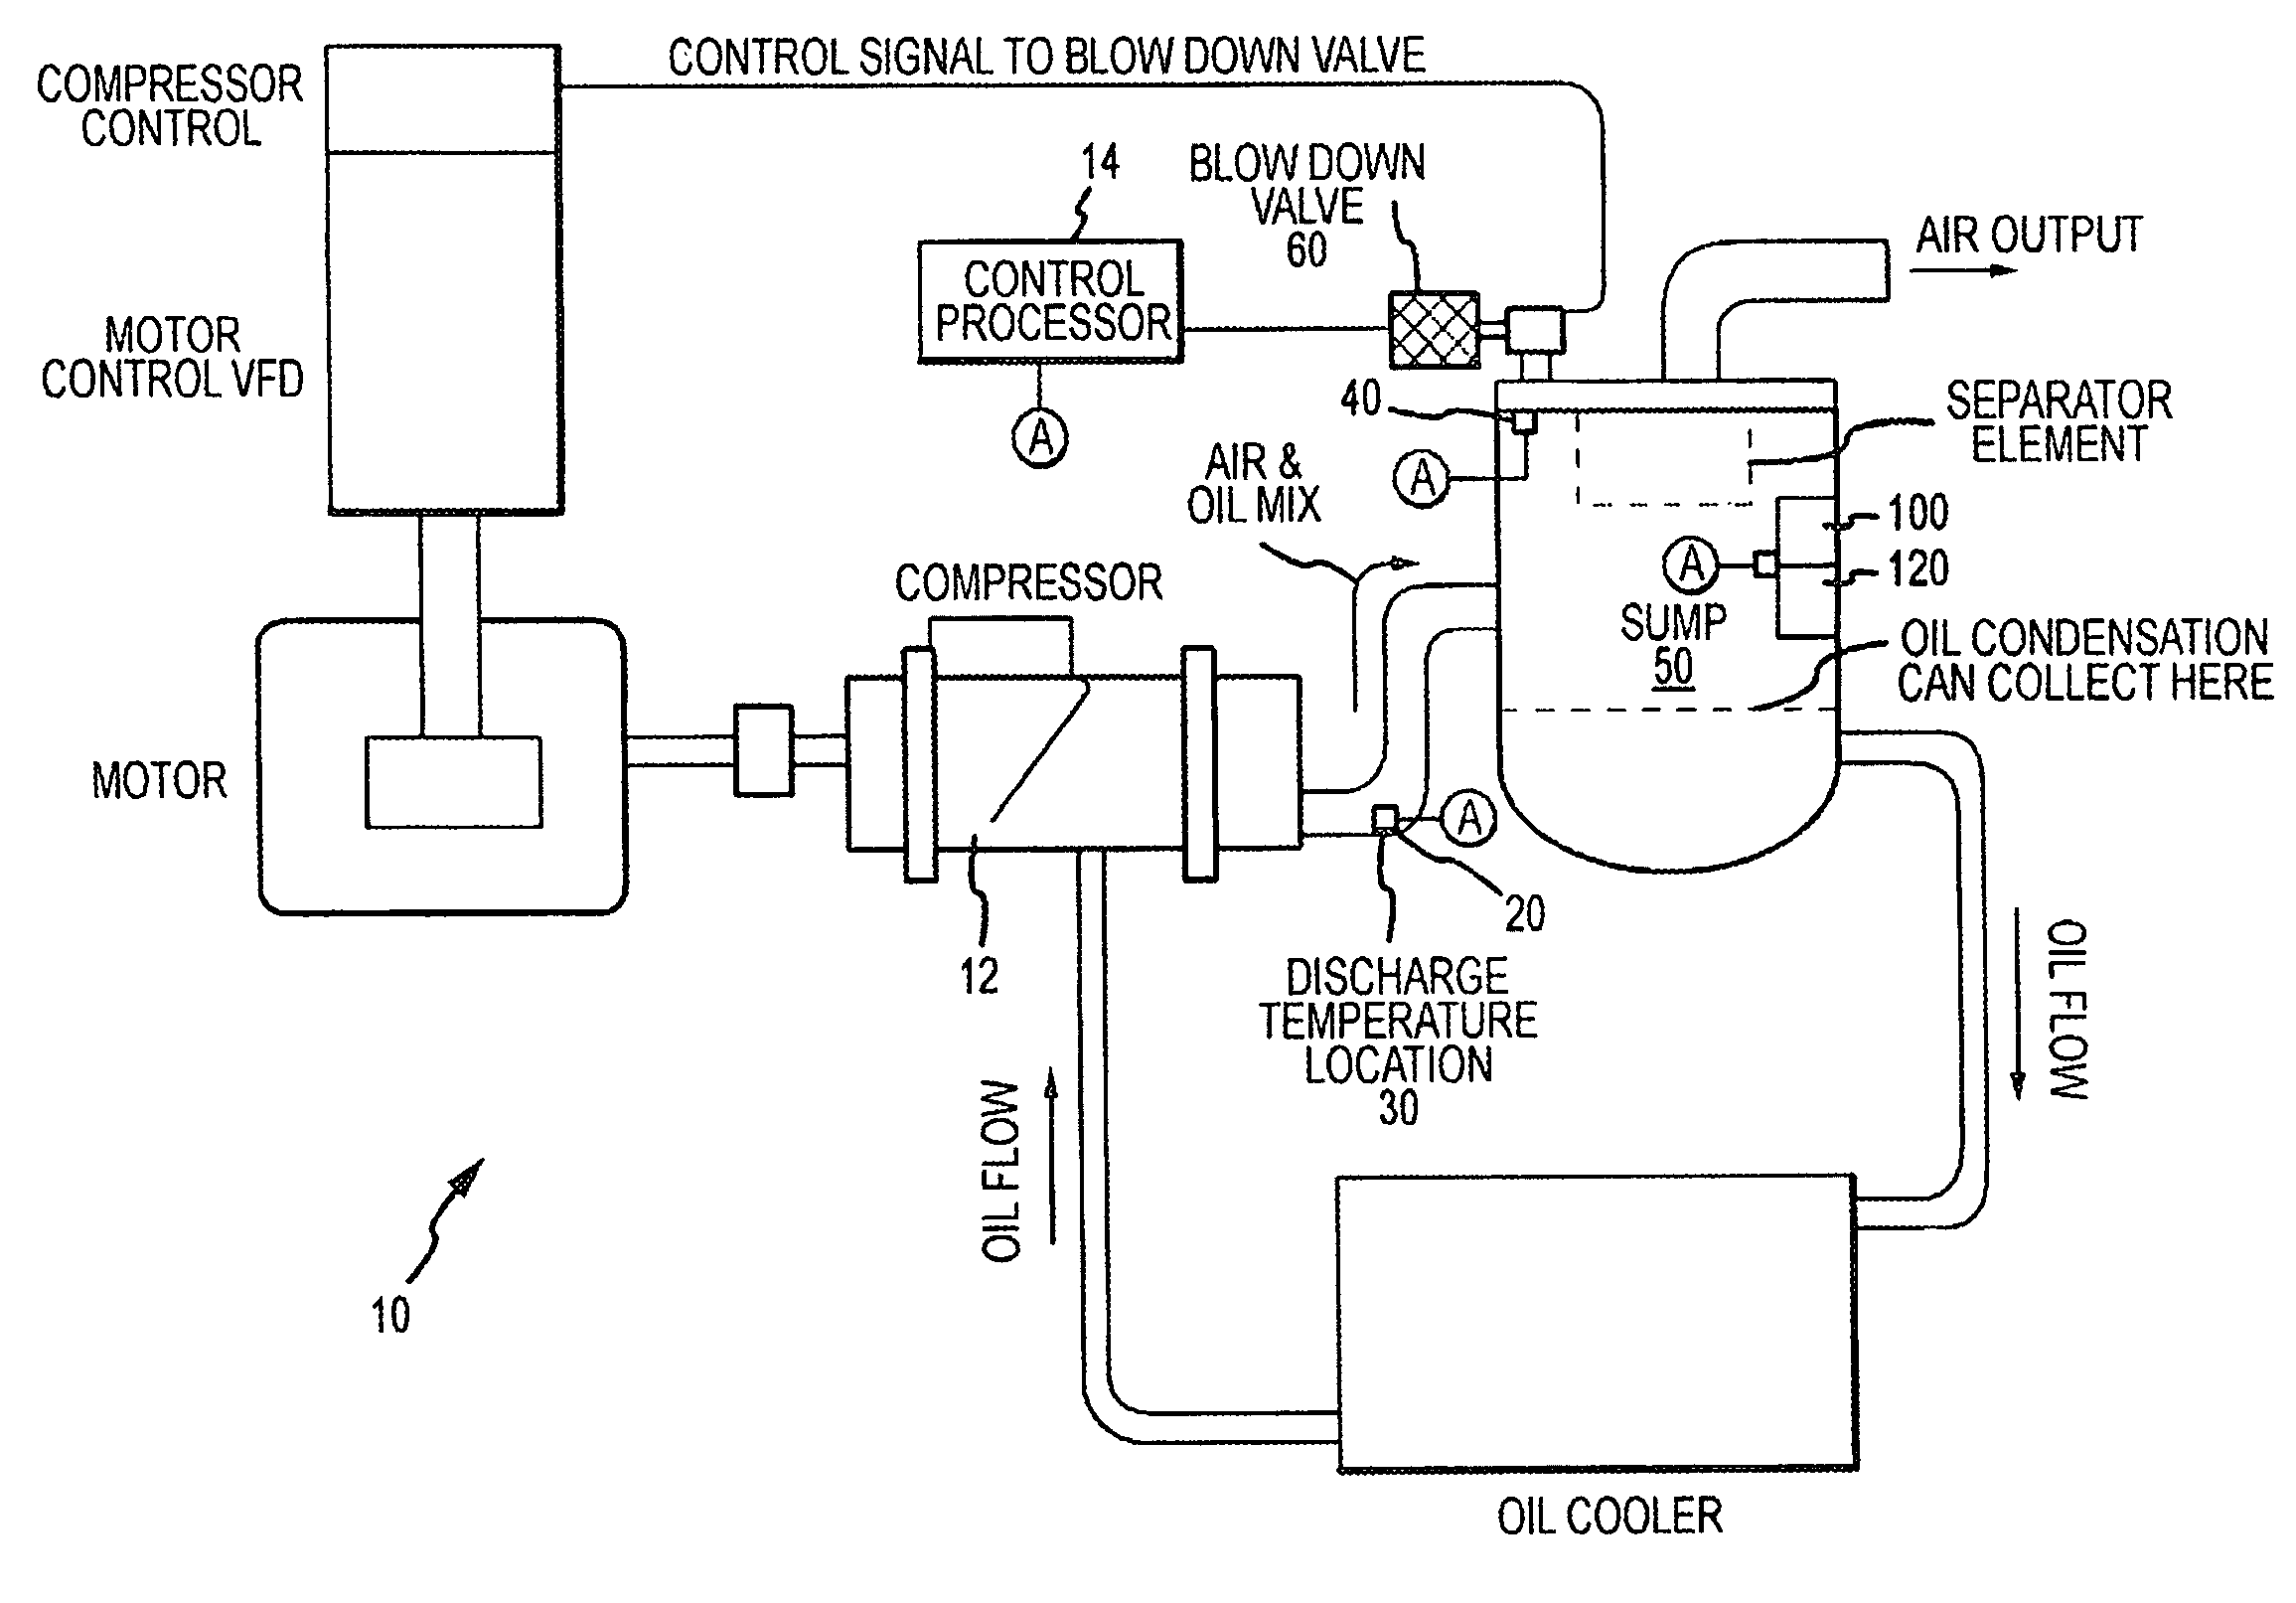 International Air Tank Schematic